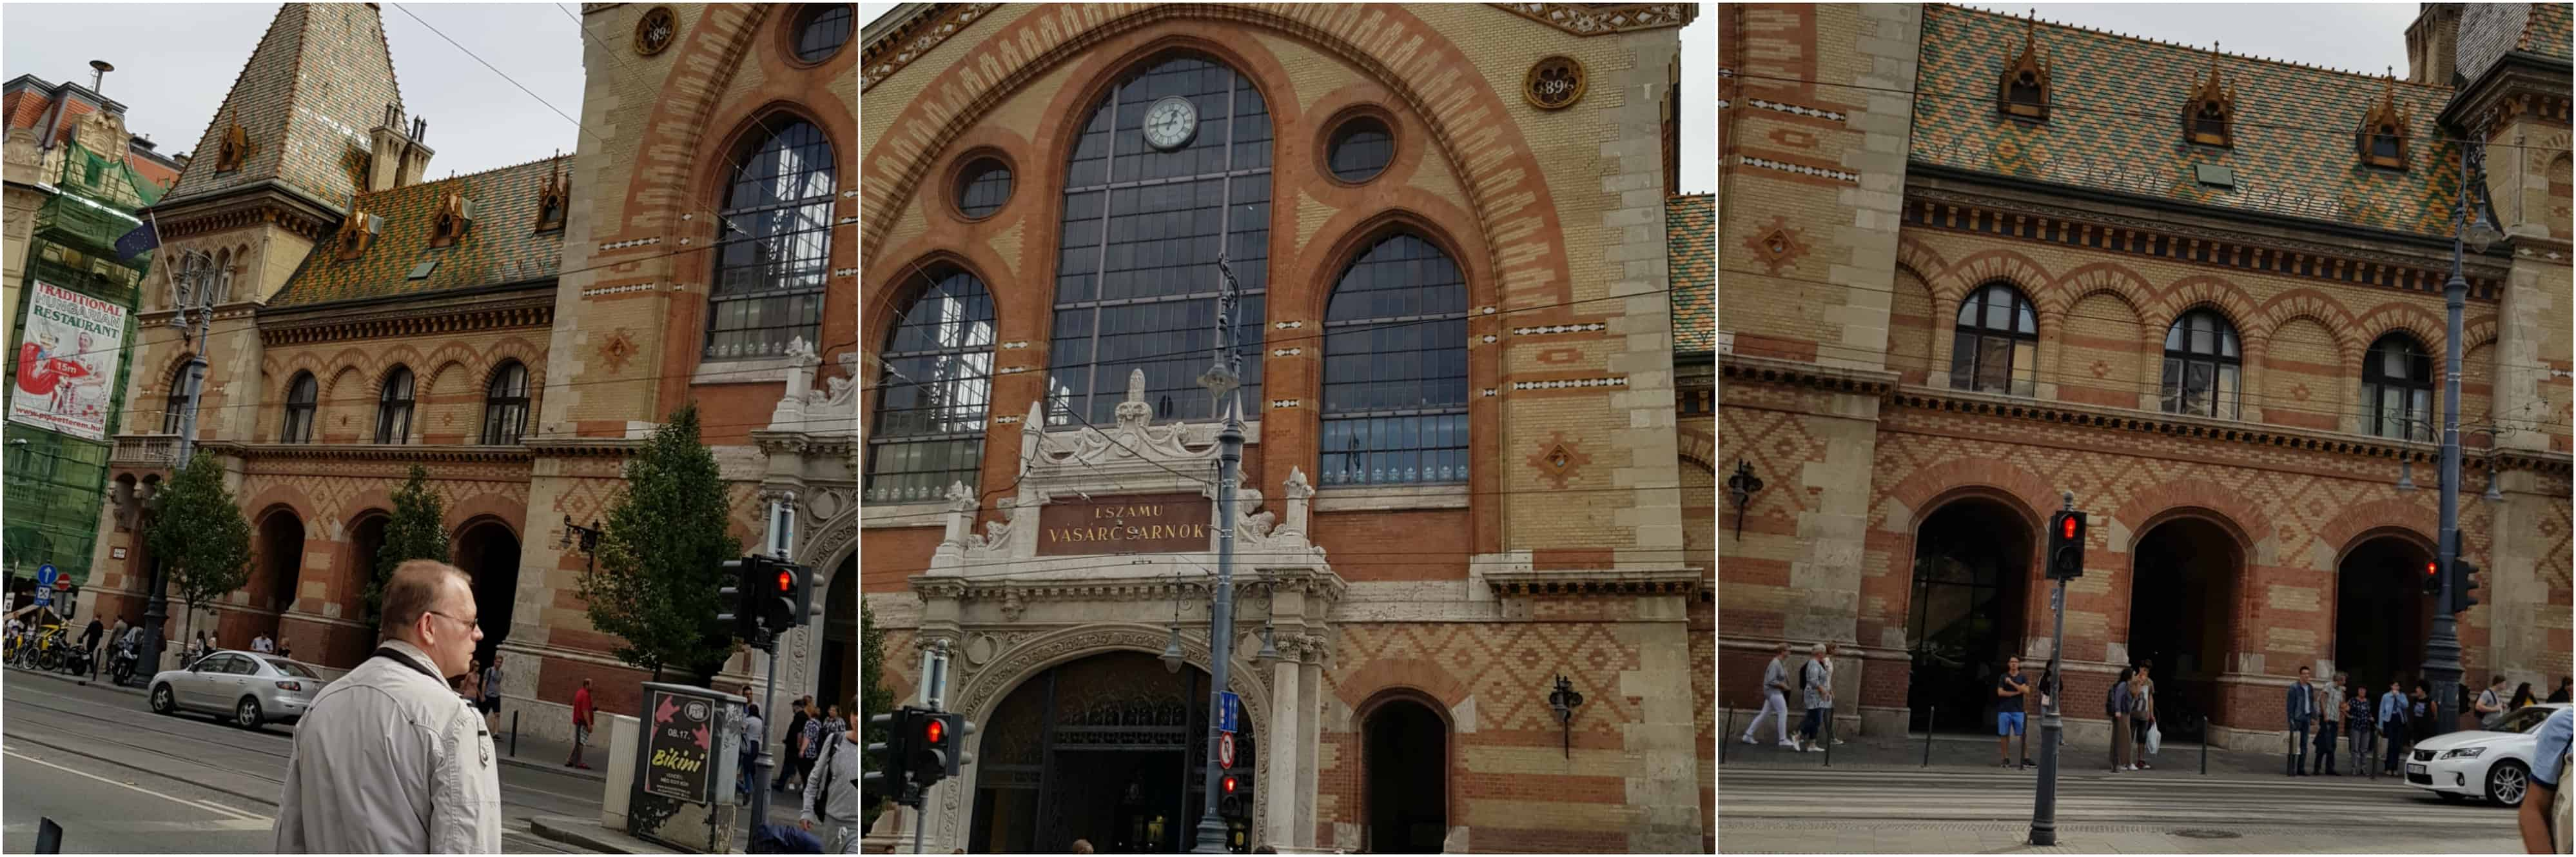 Budapest Great Market Hall Outside of Building